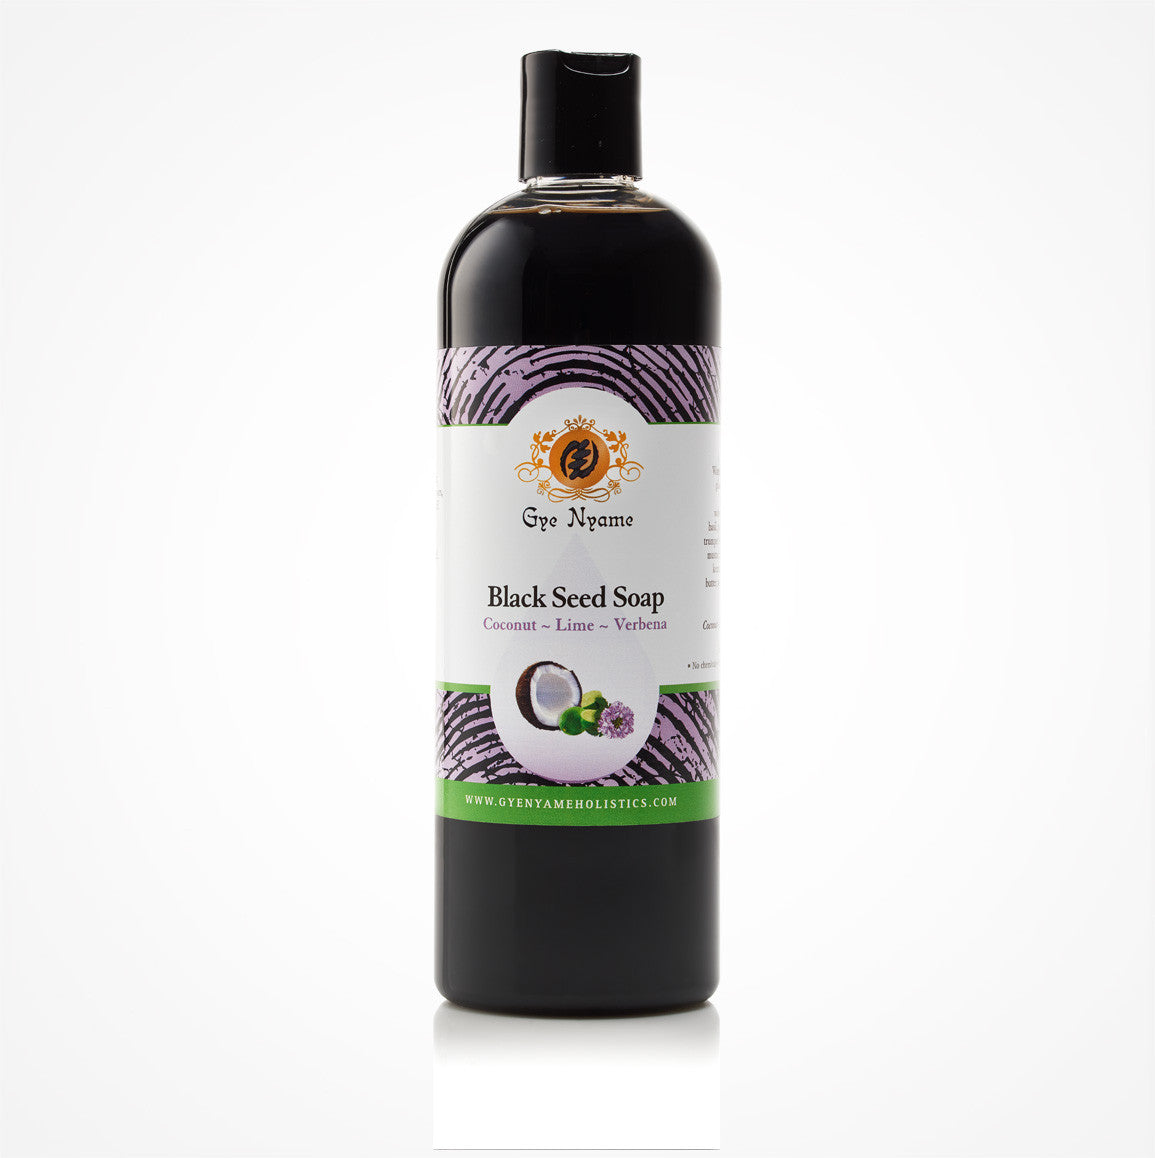 Gye Nyame Black Seed Liquid Soap Coconut Lime Verbena (Nigella Sativa)